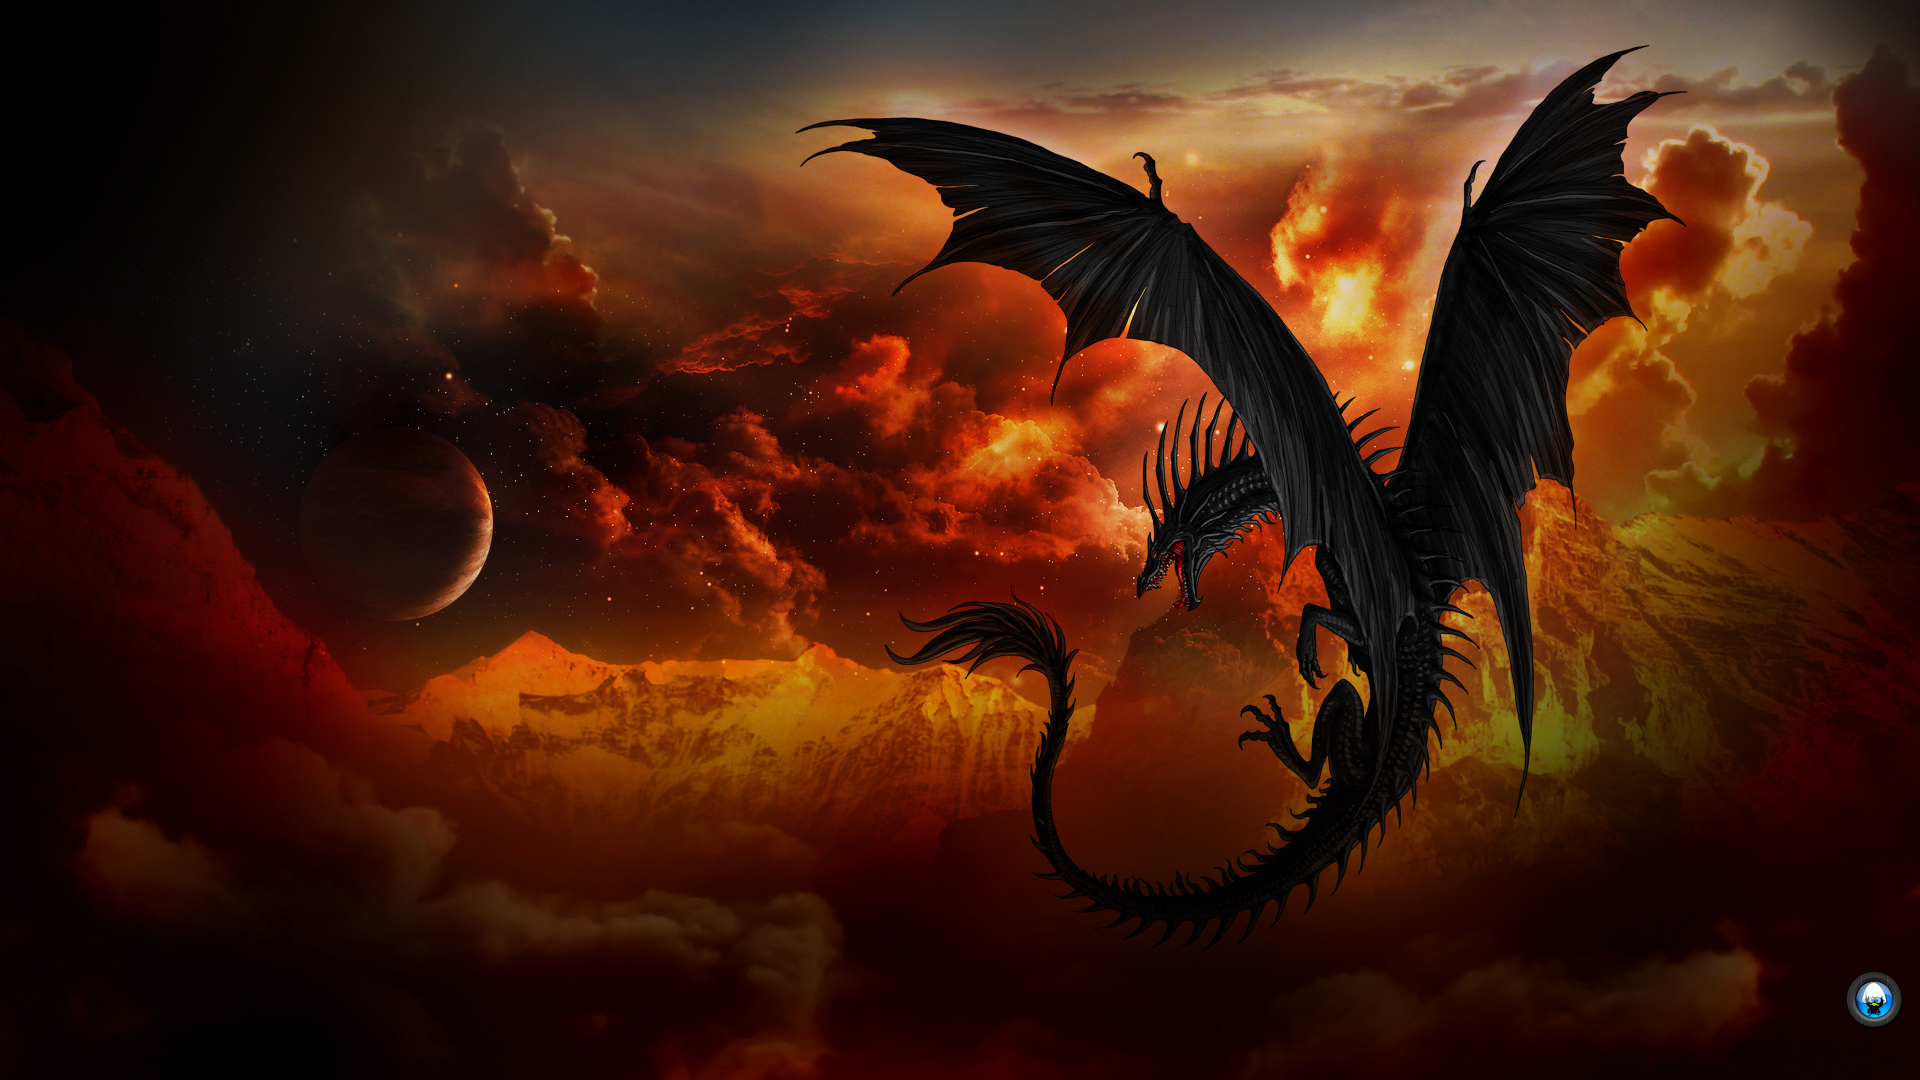 Dragon Wallpaper 6 of 23 Flying Dragon HD Wallpapers 1920x1080